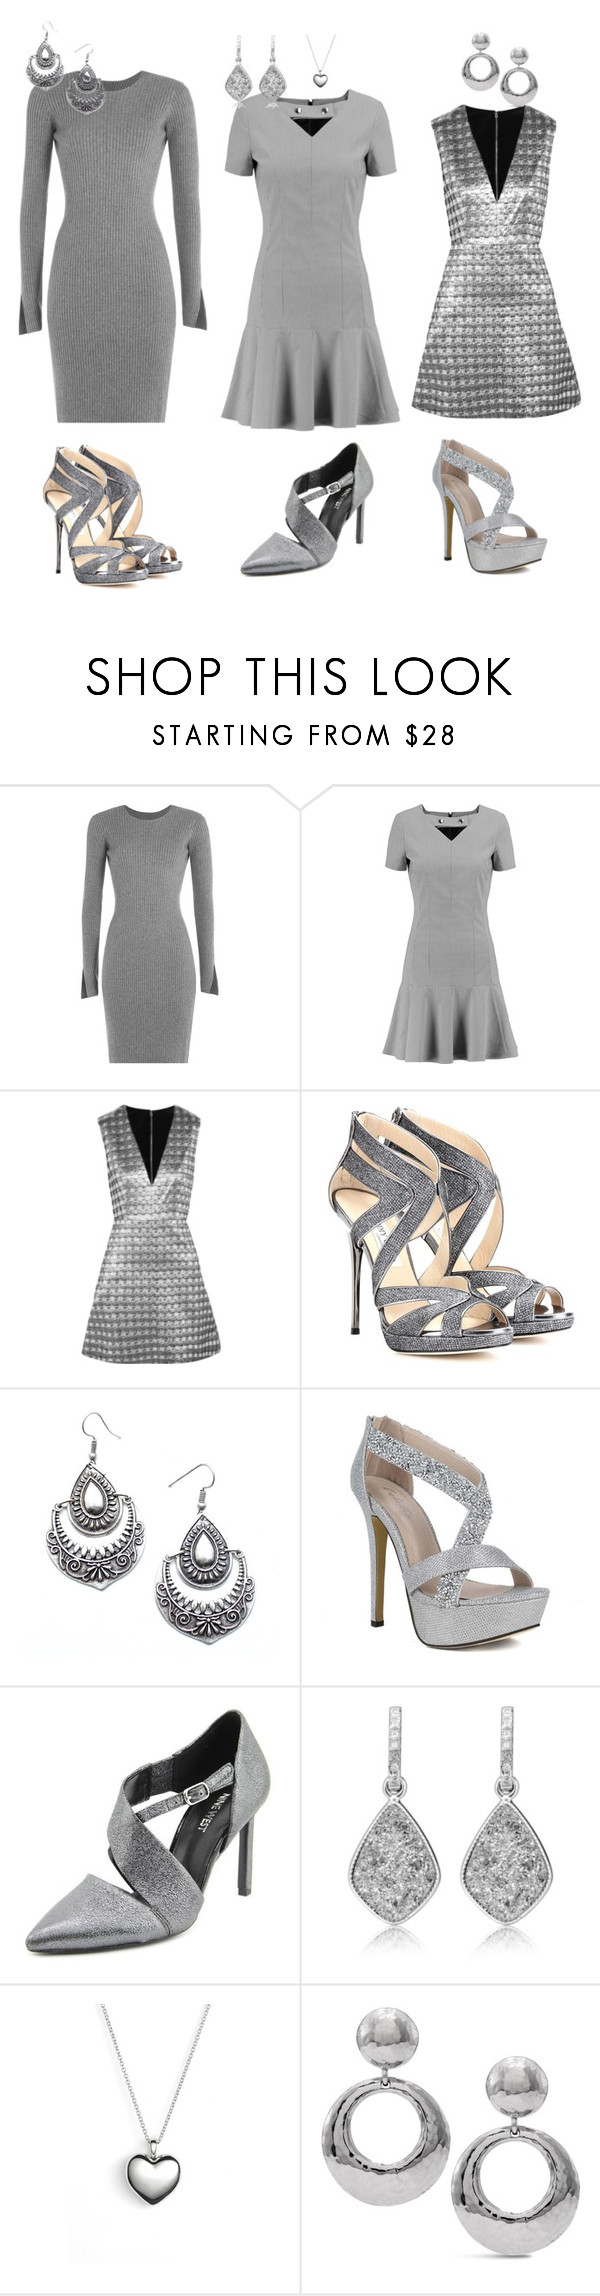 """""""Untitled #2046"""" by sarah-michelle-steed ❤ liked on Polyvore featuring Alexander Wang, Carven, Alice + Olivia, Jimmy Choo, Child Of Wild, Nine West, Pandora, Chico's, women's clothing and women"""